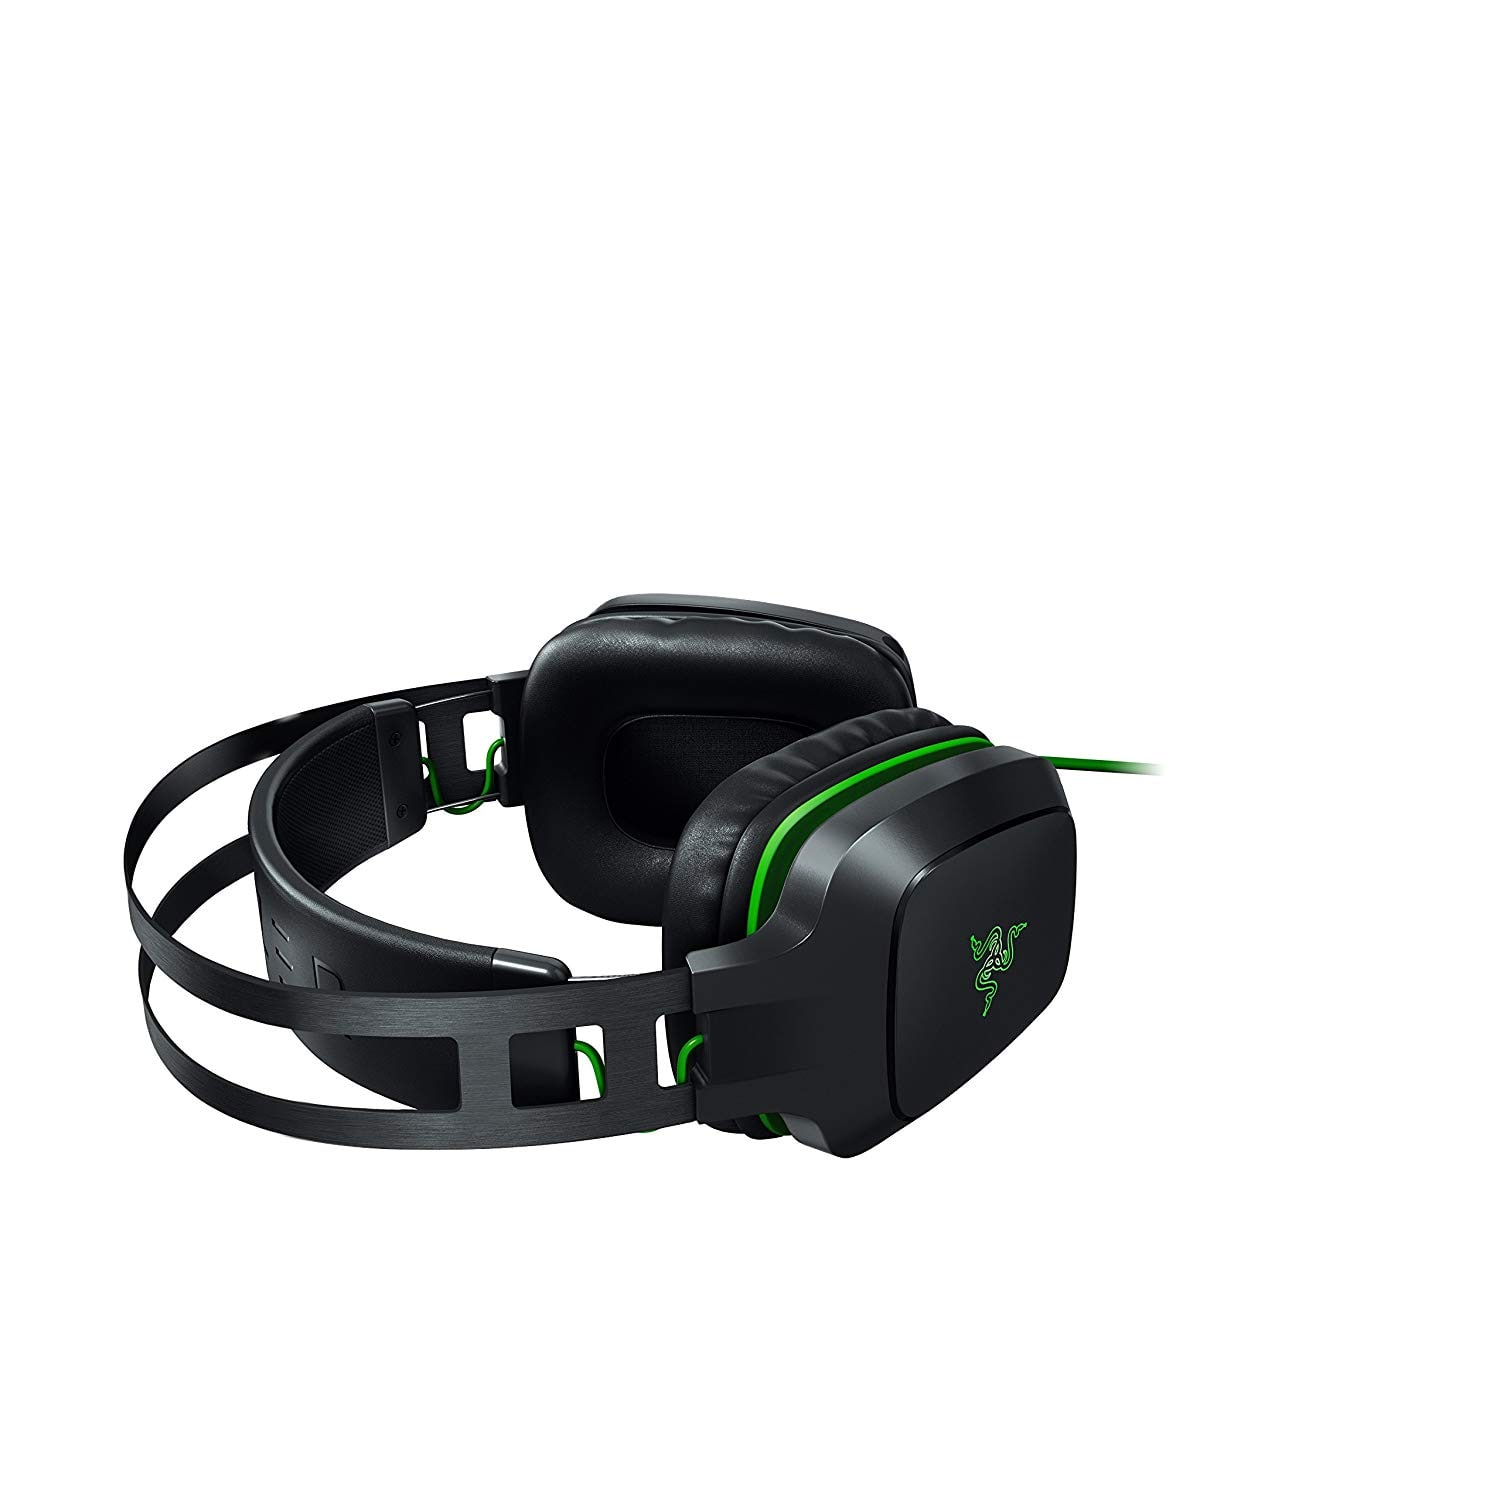 61c8a8fe020 Razer Electra V2 USB: 7.1 Surround Sound - Gaming Headset Works with PC &  PS4